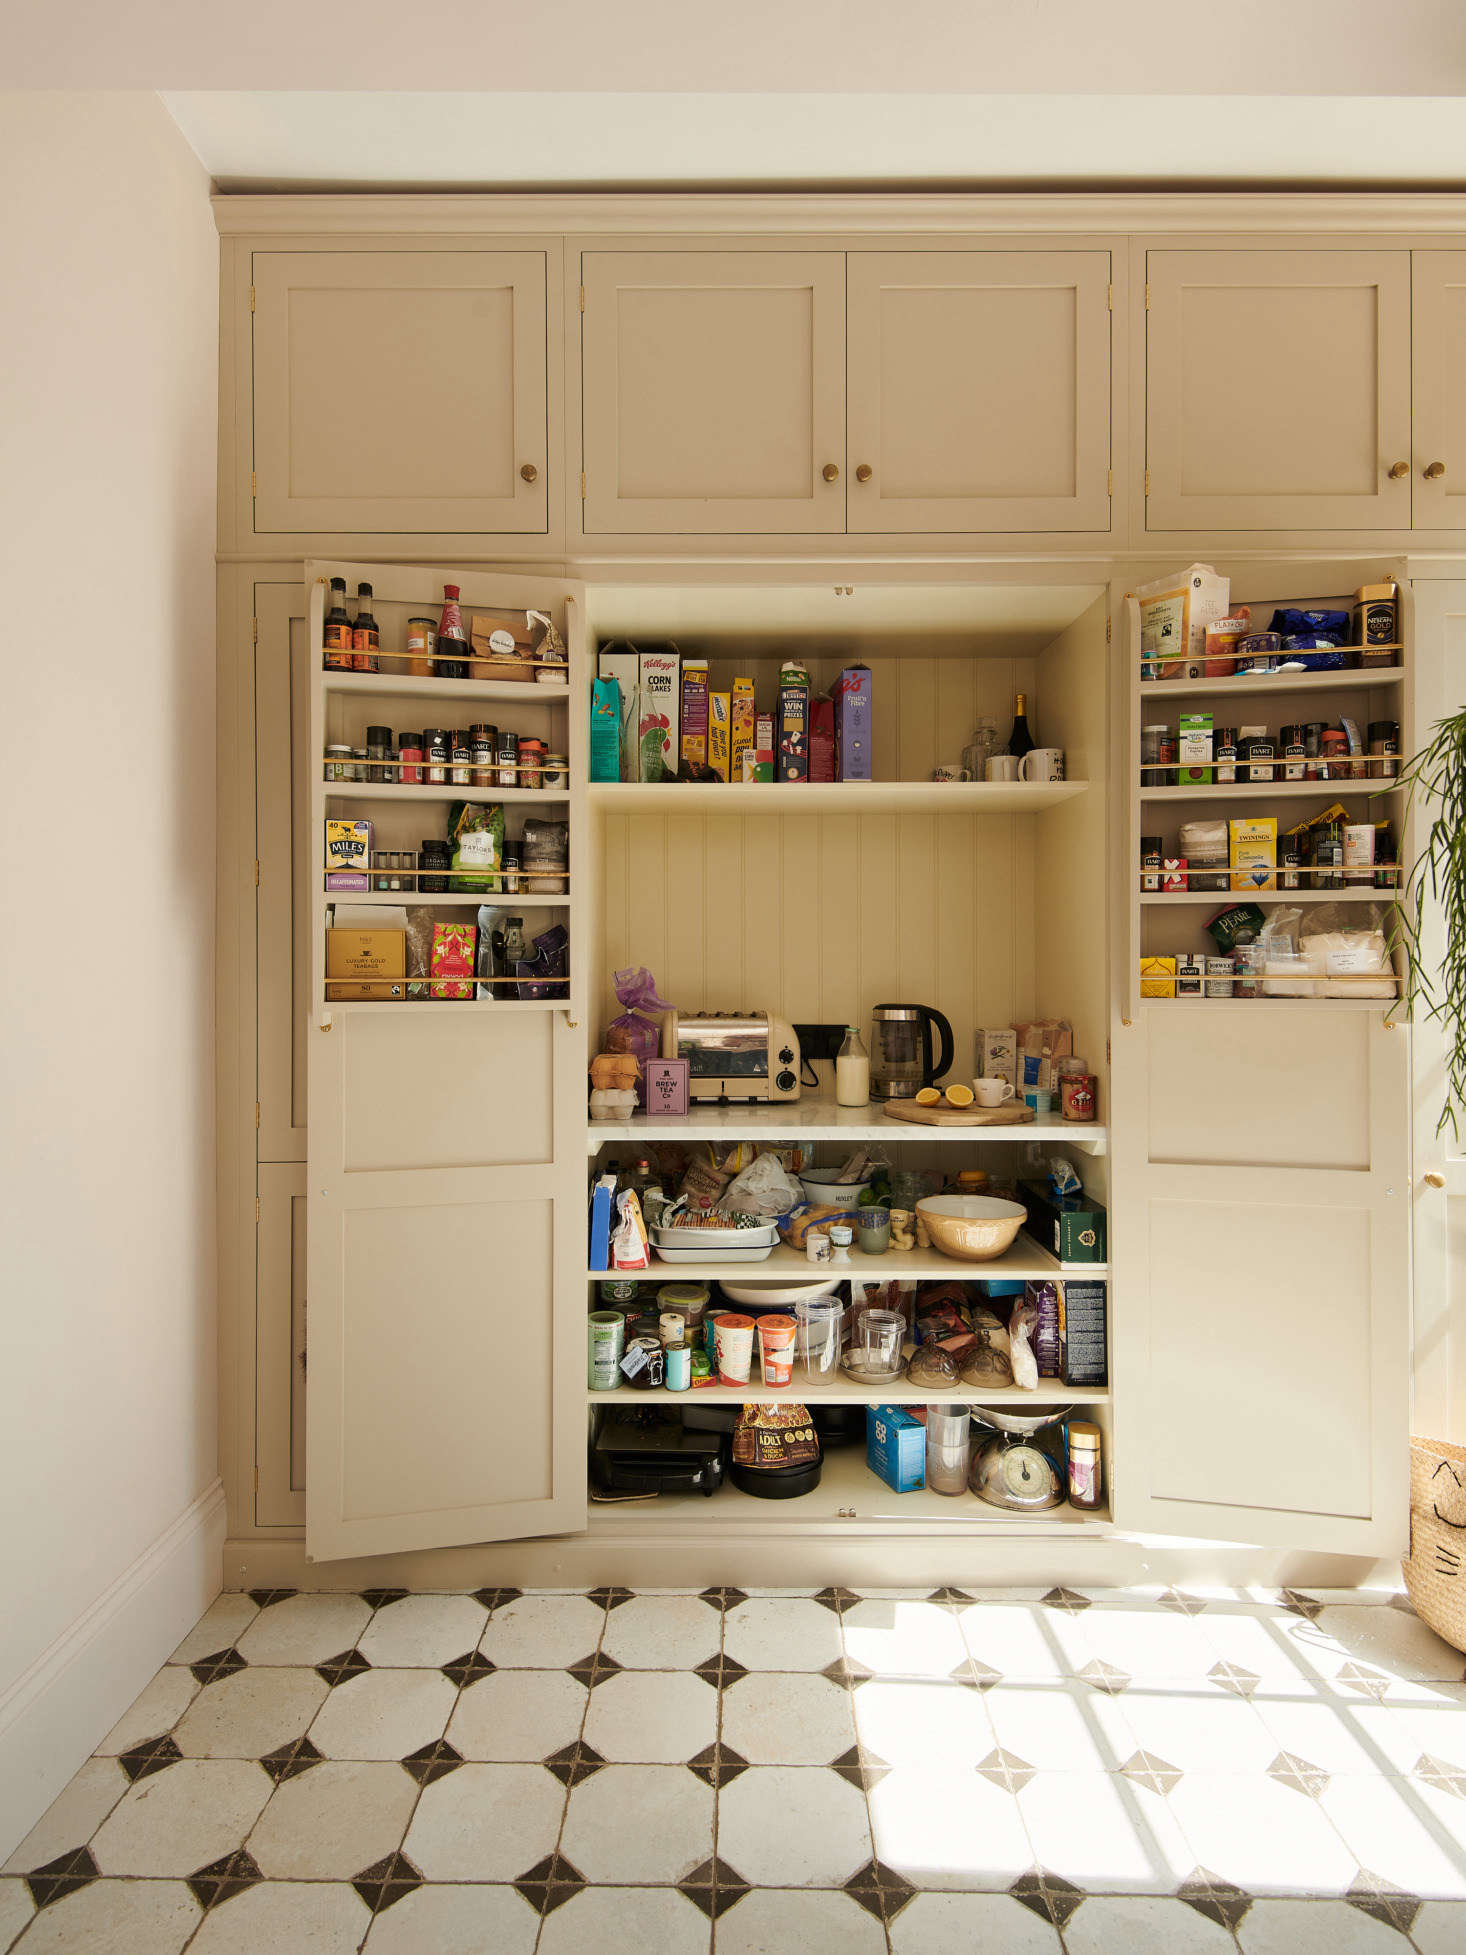 Adjacent to the refrigerator is the pantry. An electrical outlet inside means Chris can store the toaster and tea kettle on the middle shelf.